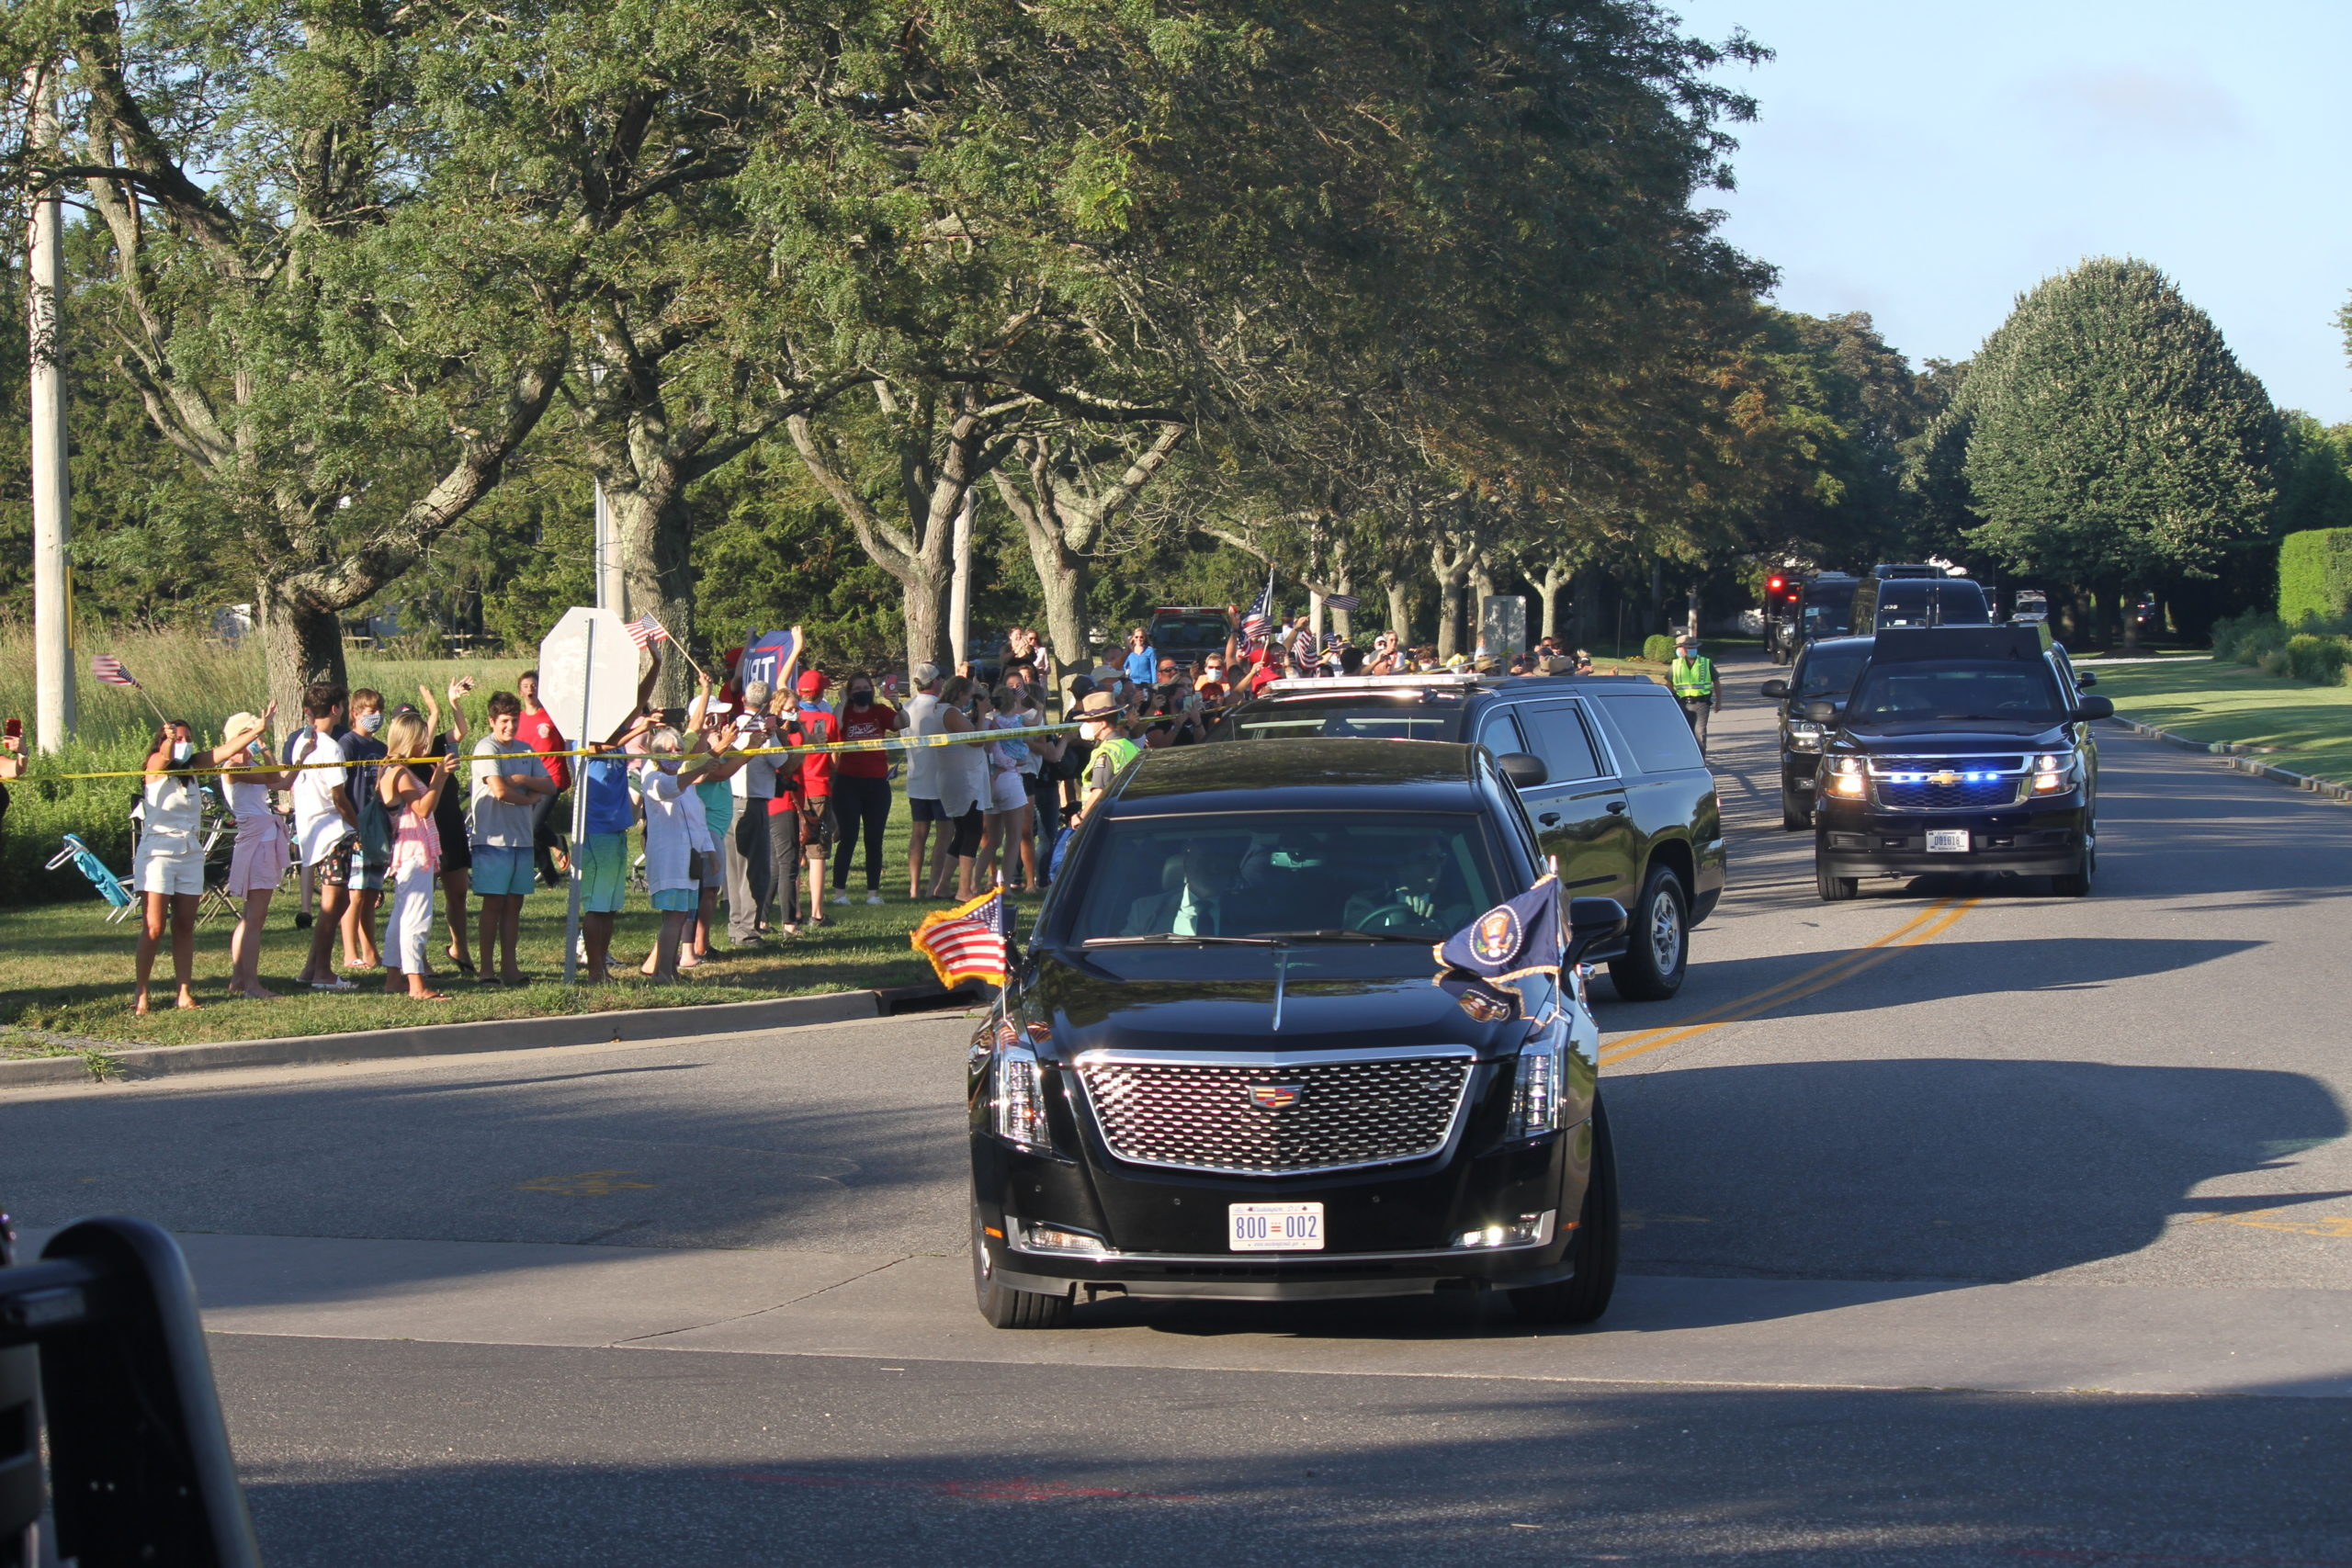 Small groups of protestors and supporters gathered along the preident's motorcade route through Southampton Village on Saturday evening.